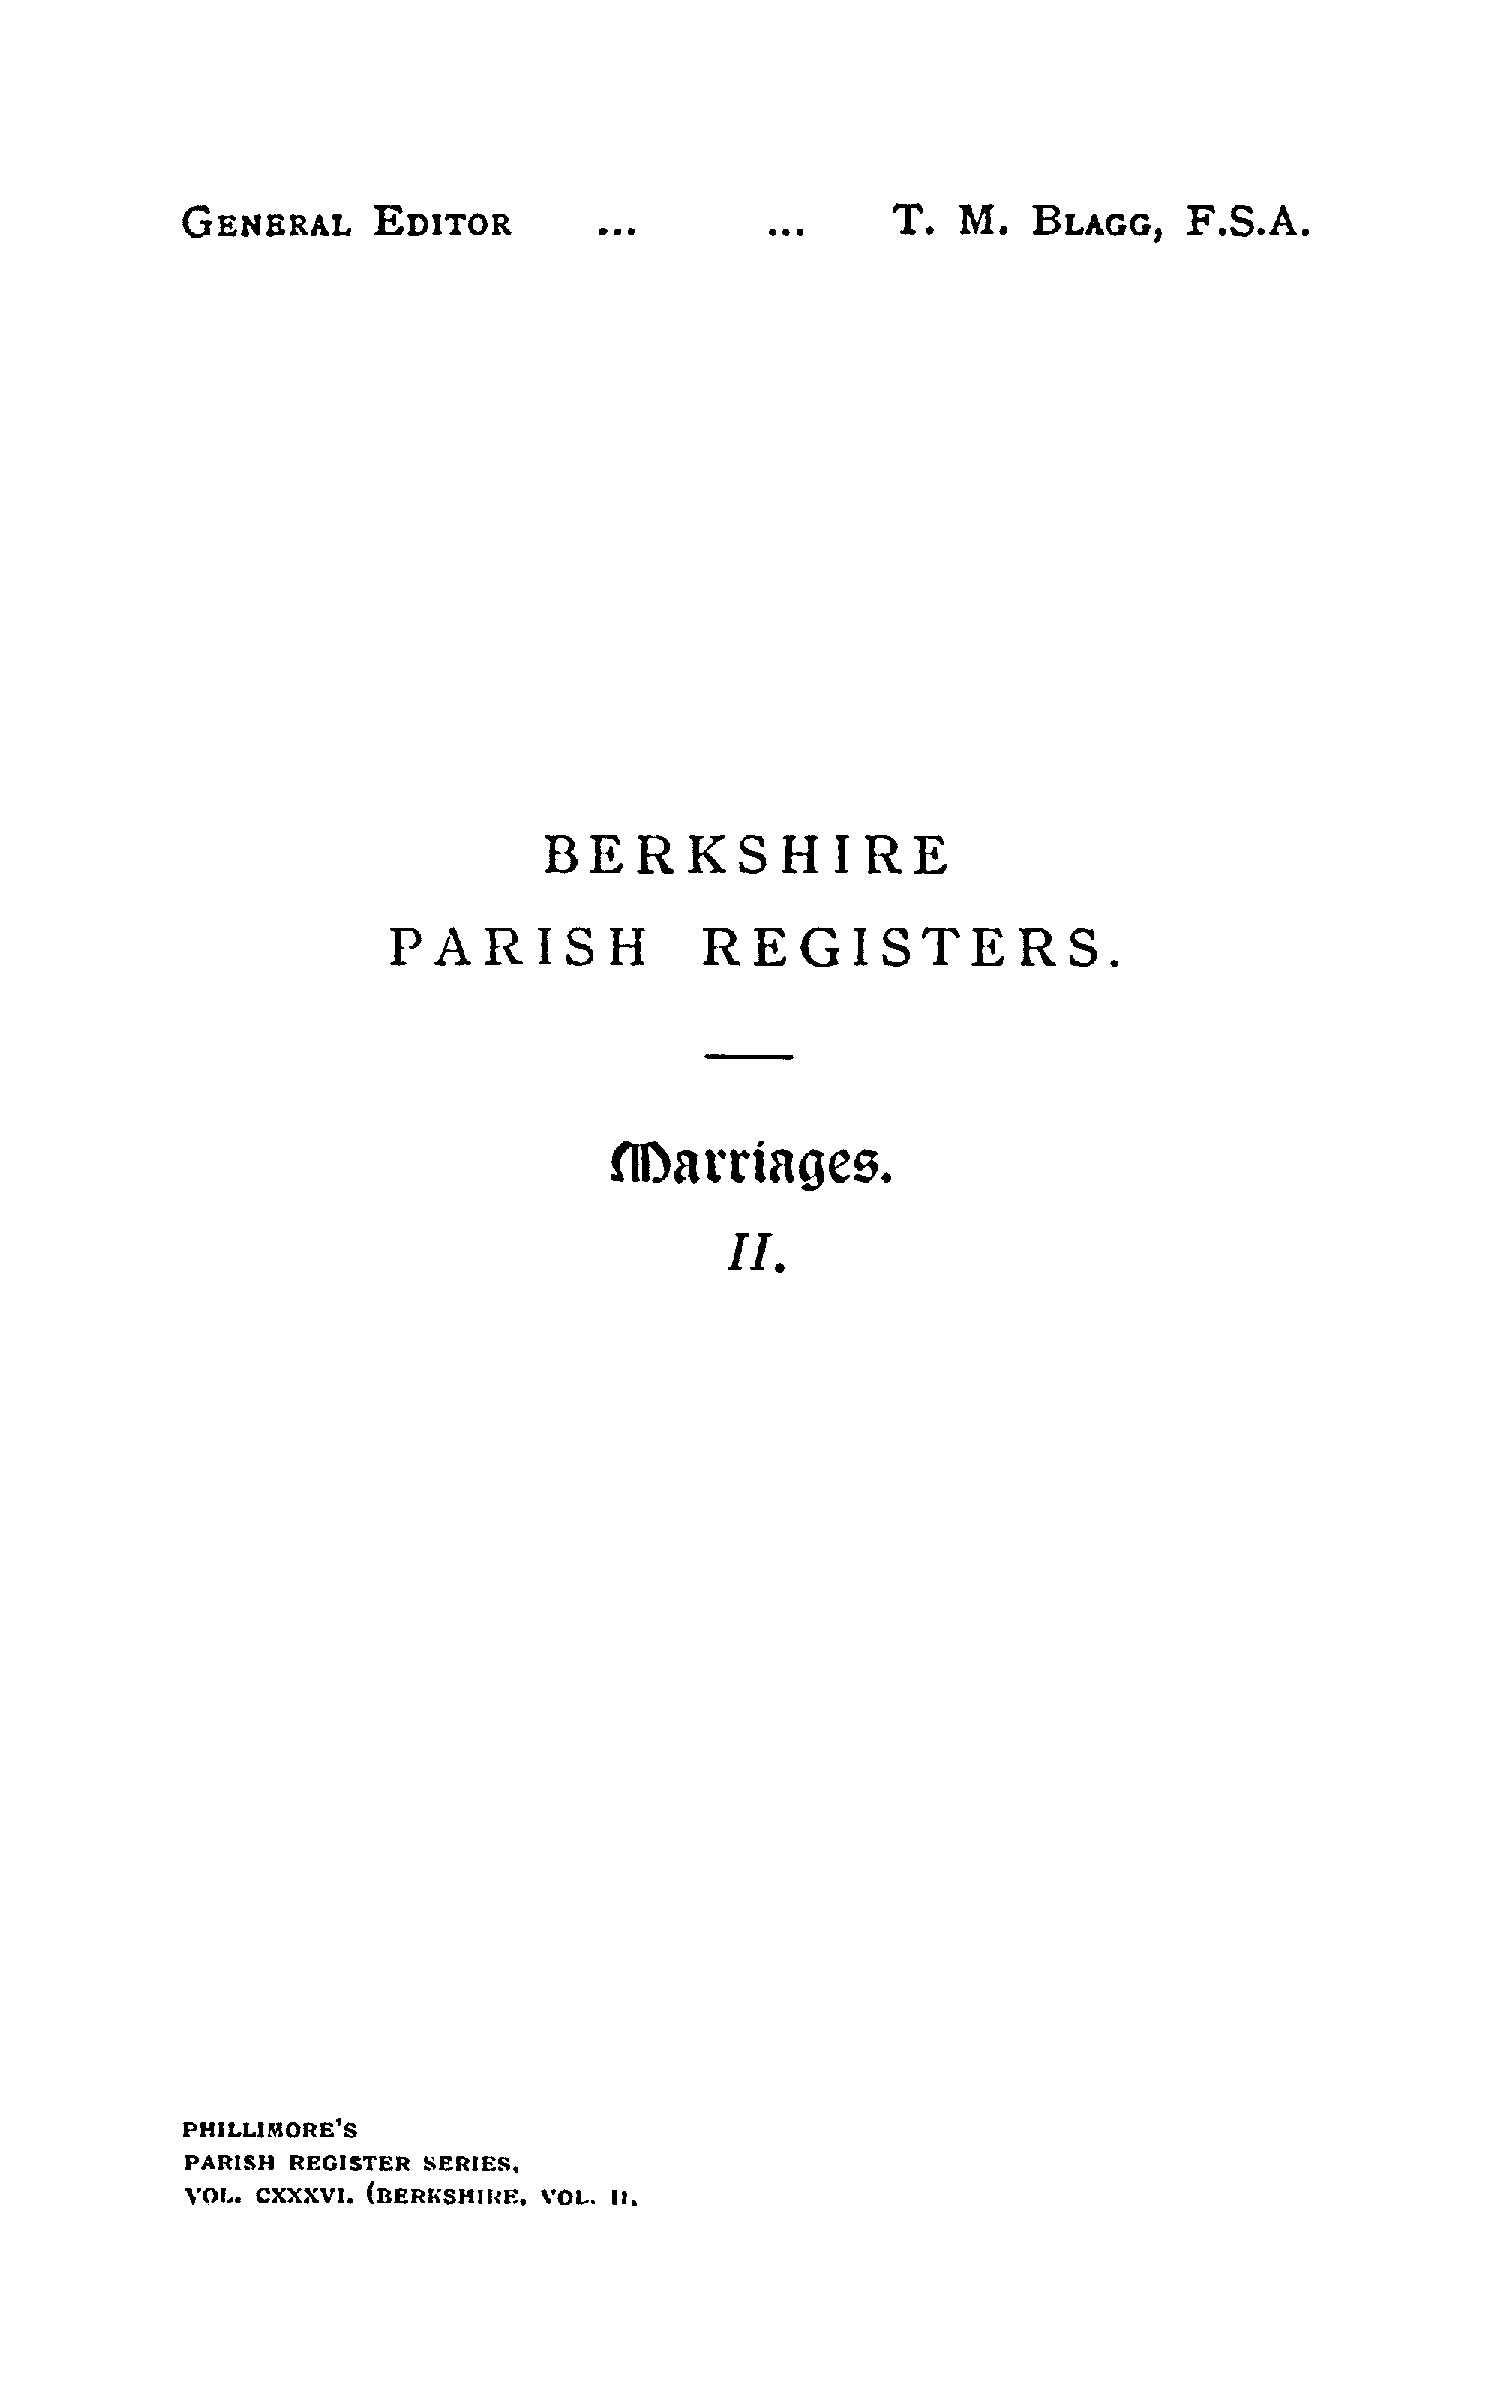 Berkshire Parish Registers - Marriages volume 2 page i - click to open larger version in a new window